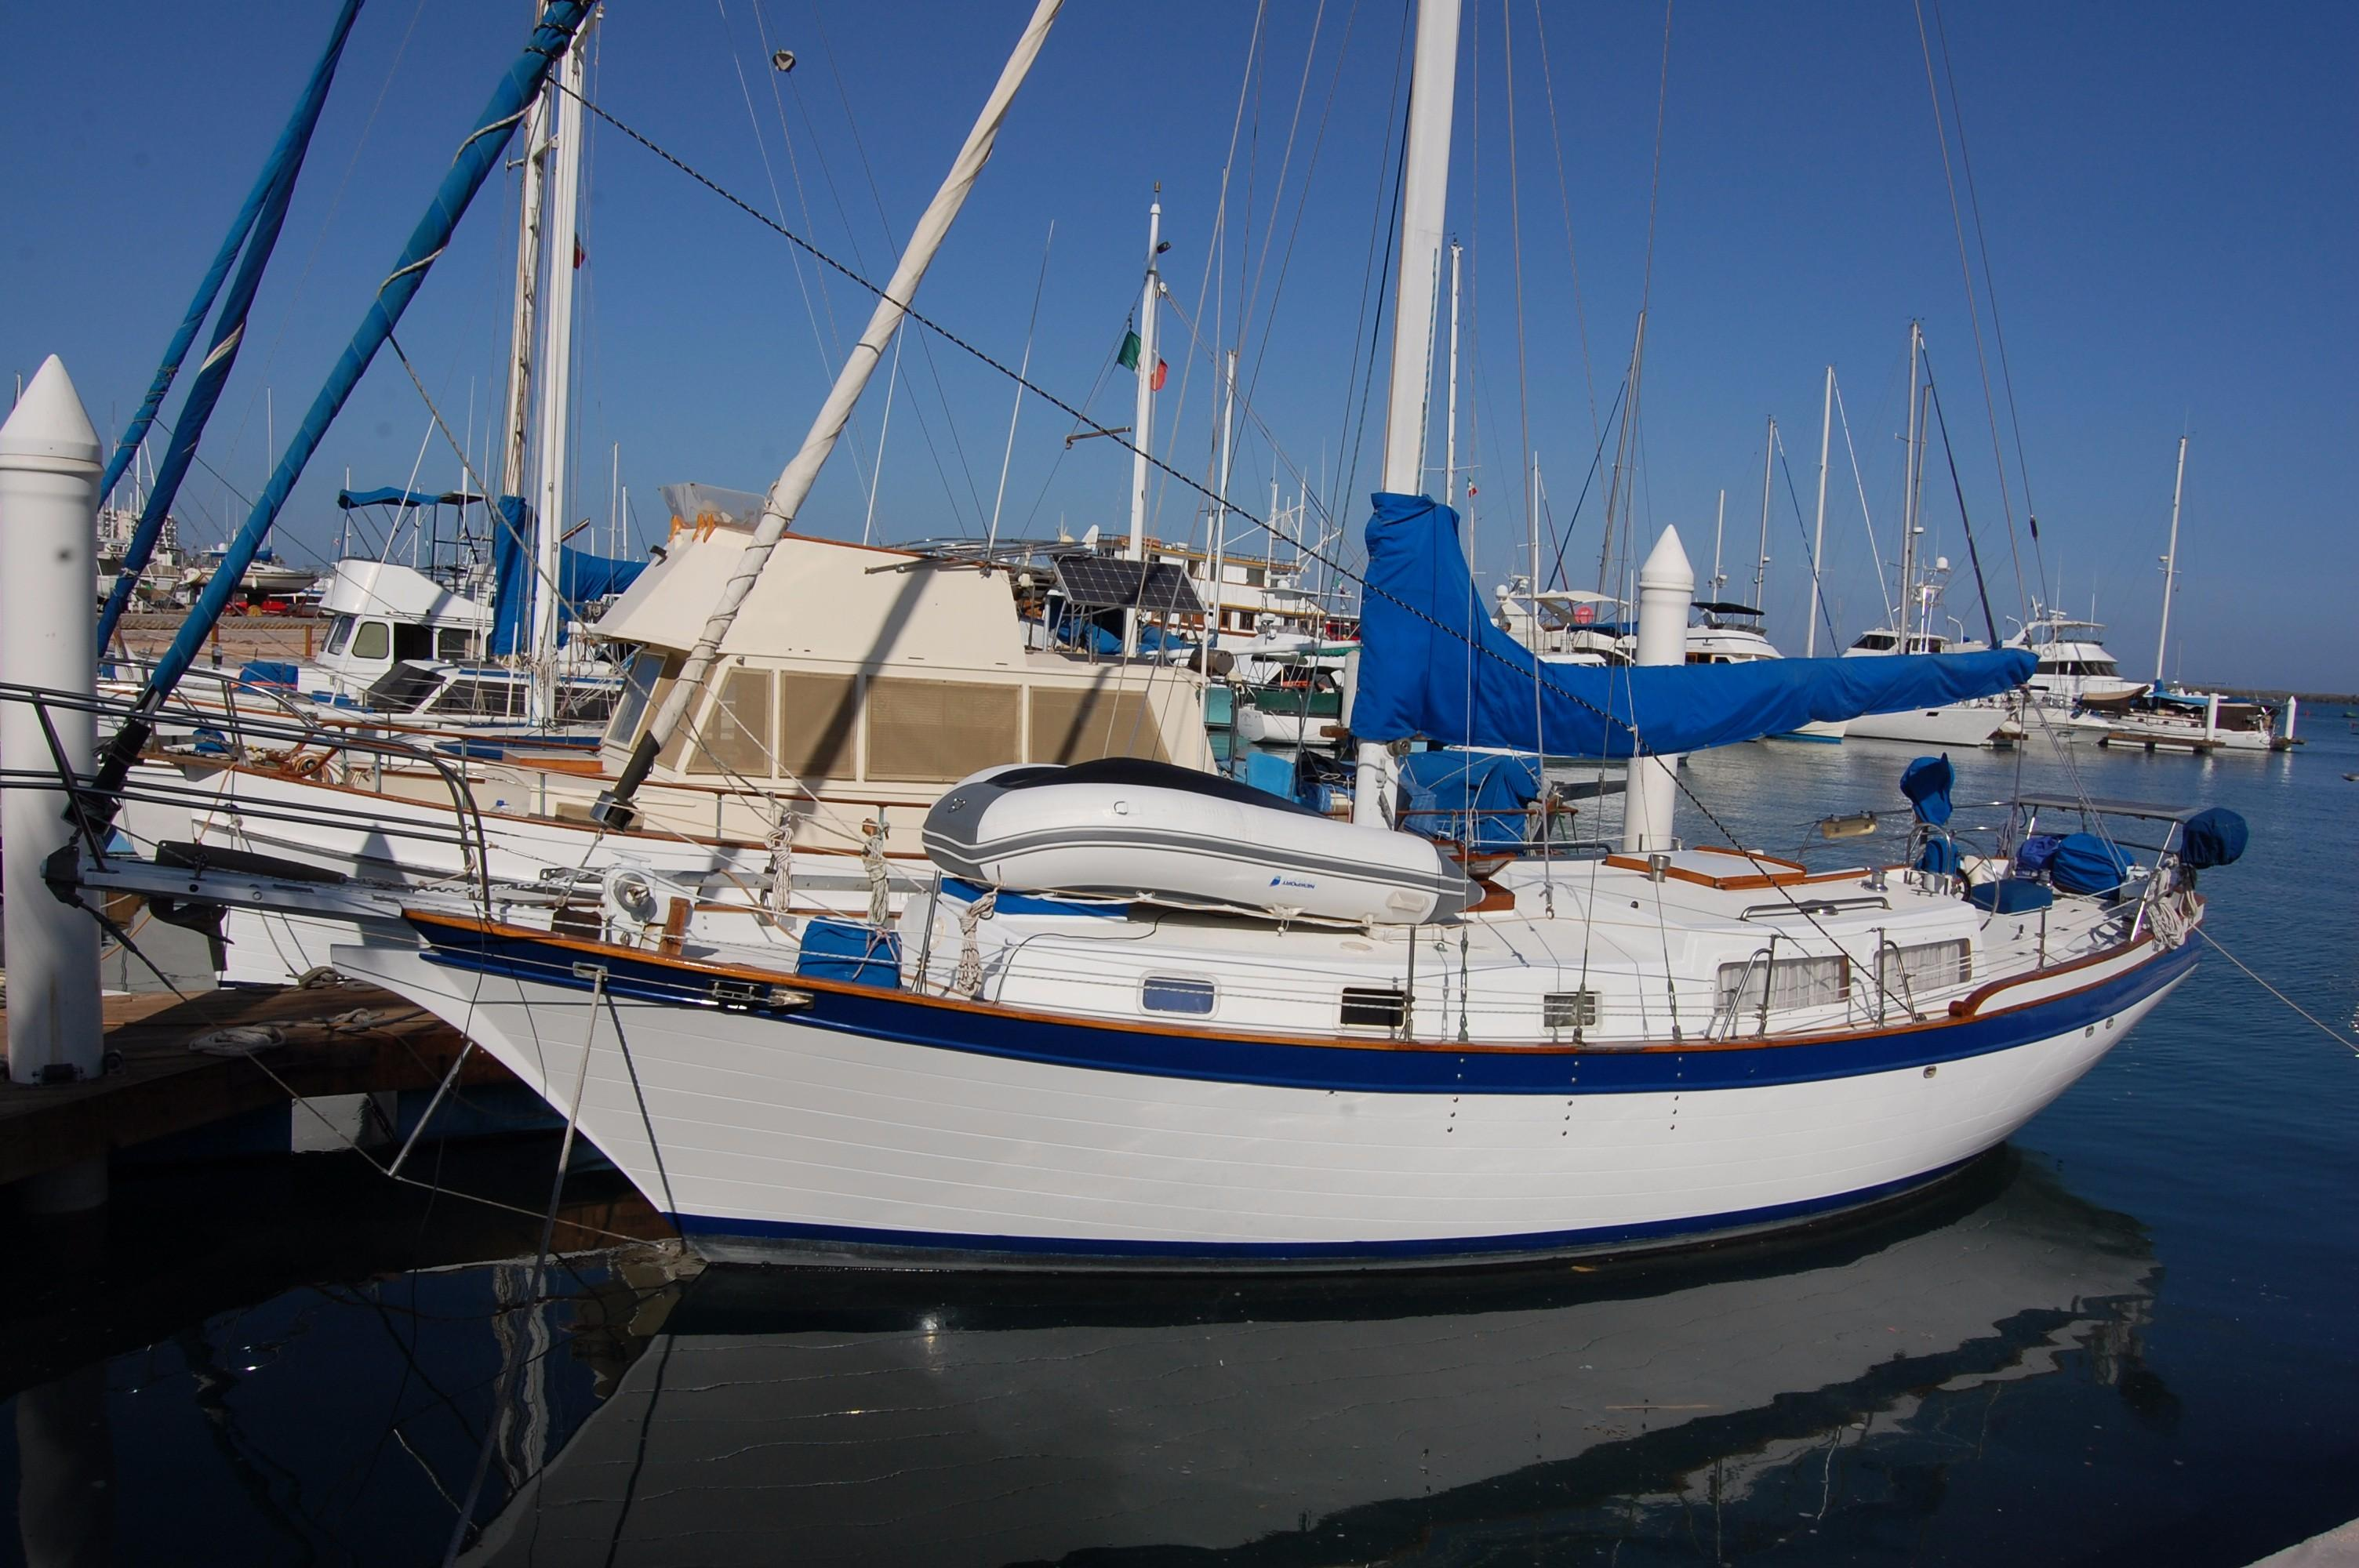 38' Downeaster Cutter+Boat for sale!